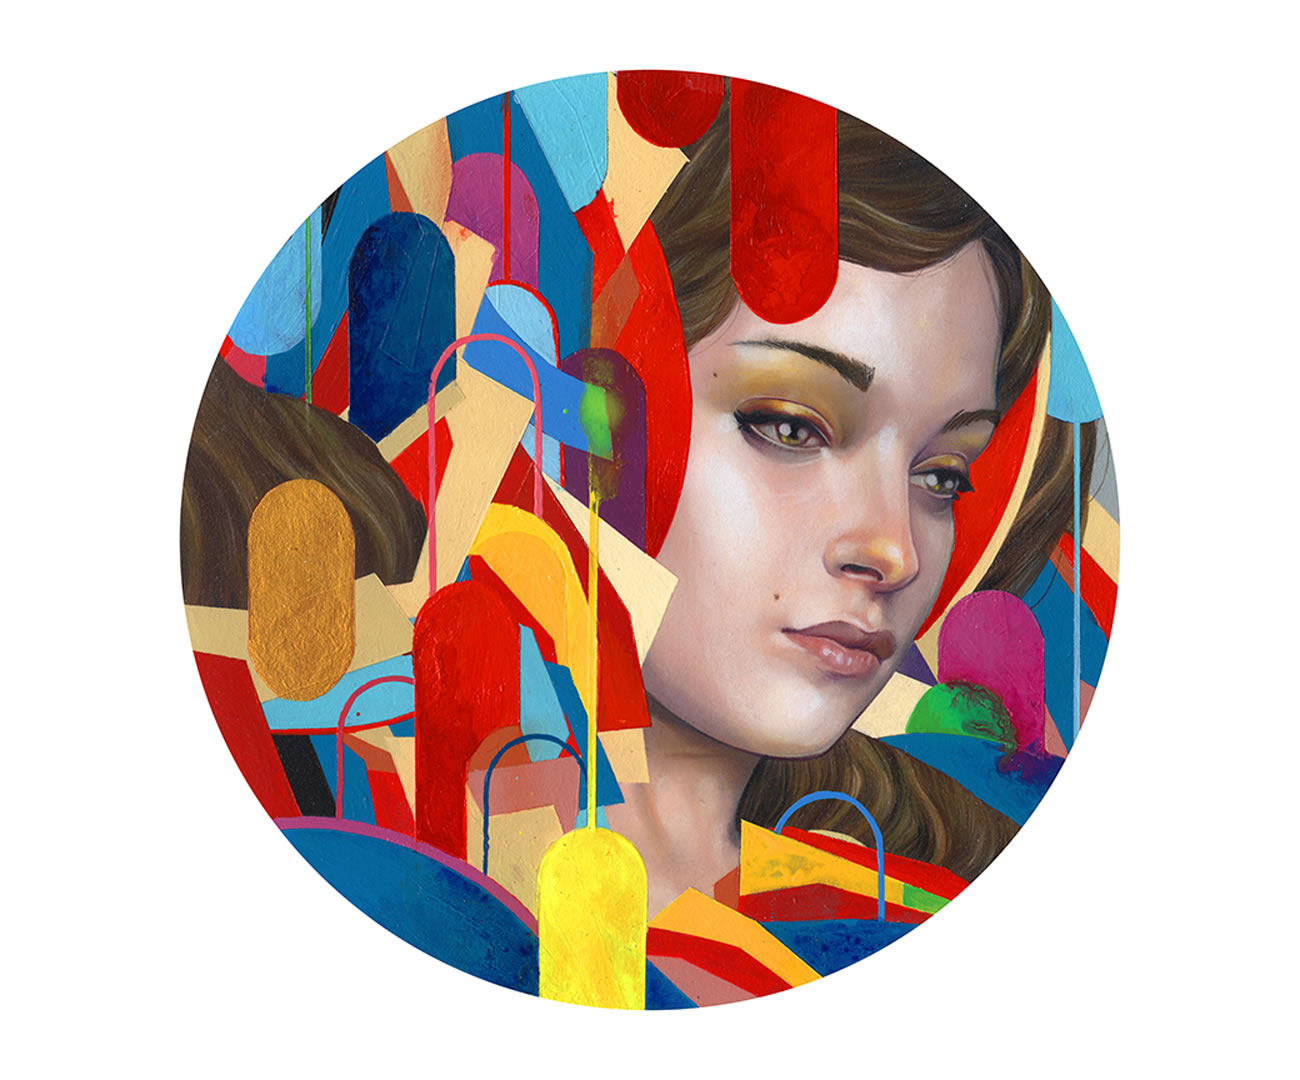 circle painting with girl face by erik jones